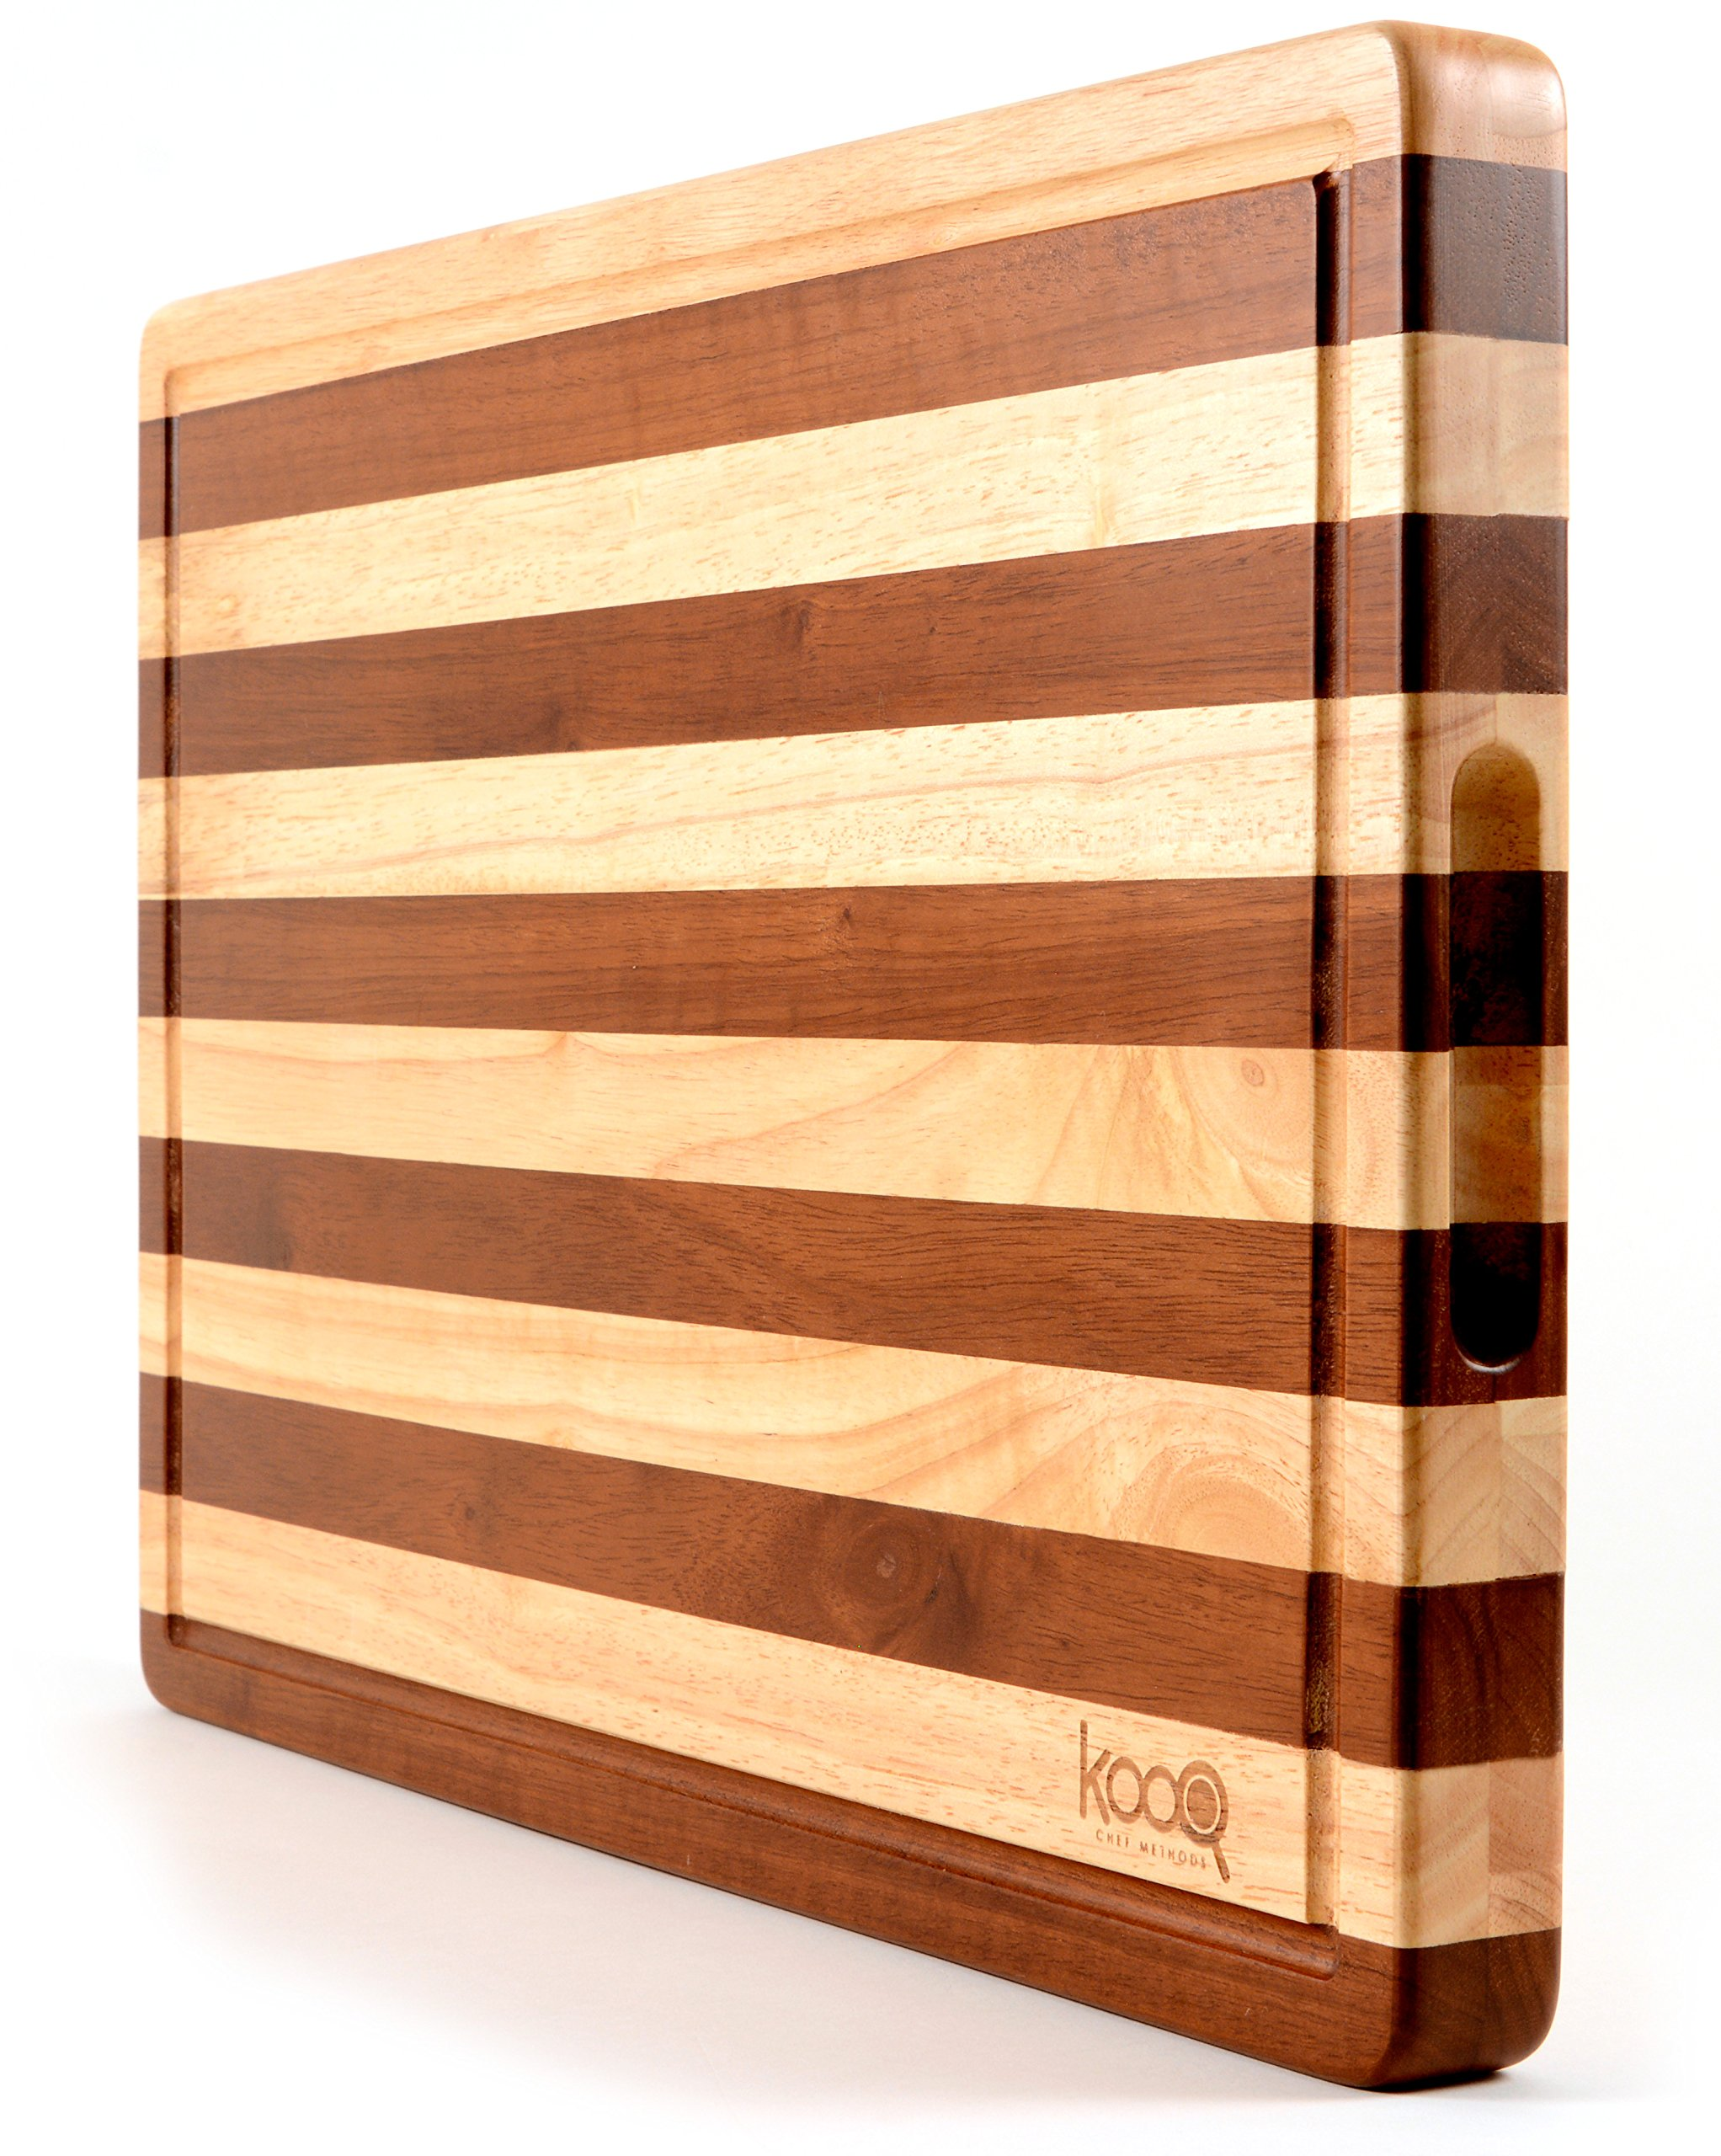 "PREMIUM - The Most Beautiful Two-Tones Chopping Block and Cutting Board! Unique Butcher's Block (Extra Large - 19.5"" by 14"" and 1.5"" thick) - Luxury Cheese Board too."